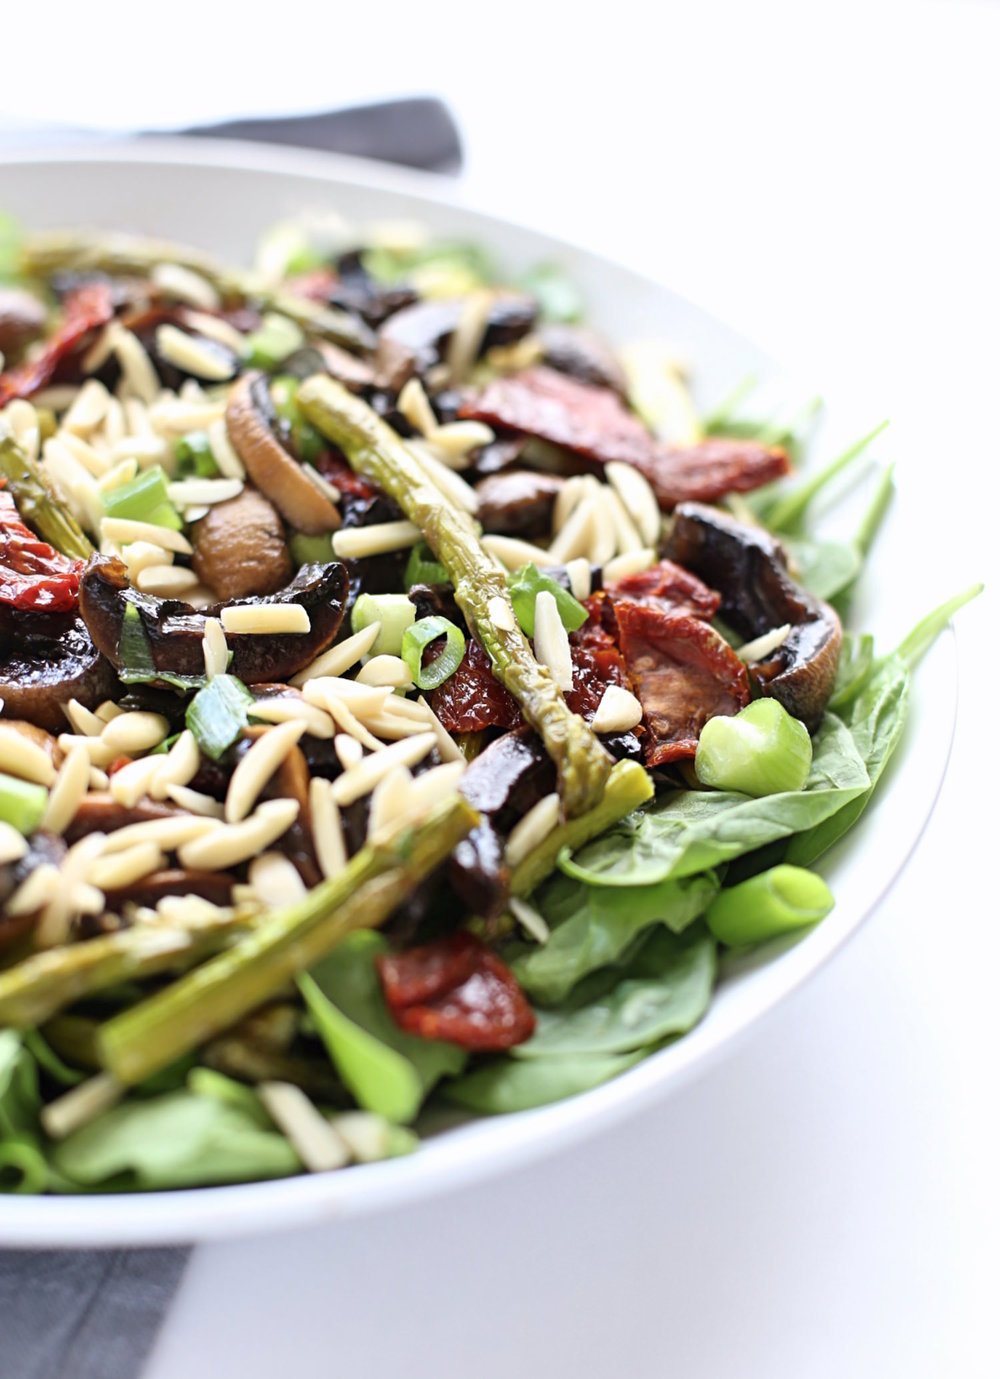 Roasted Asparagus and Mushroom Salad with spinach, sun-dried tomatoes, scallions, basil, and almonds plus an olive oil balsamic honey dressing. | TrufflesandTrends.com